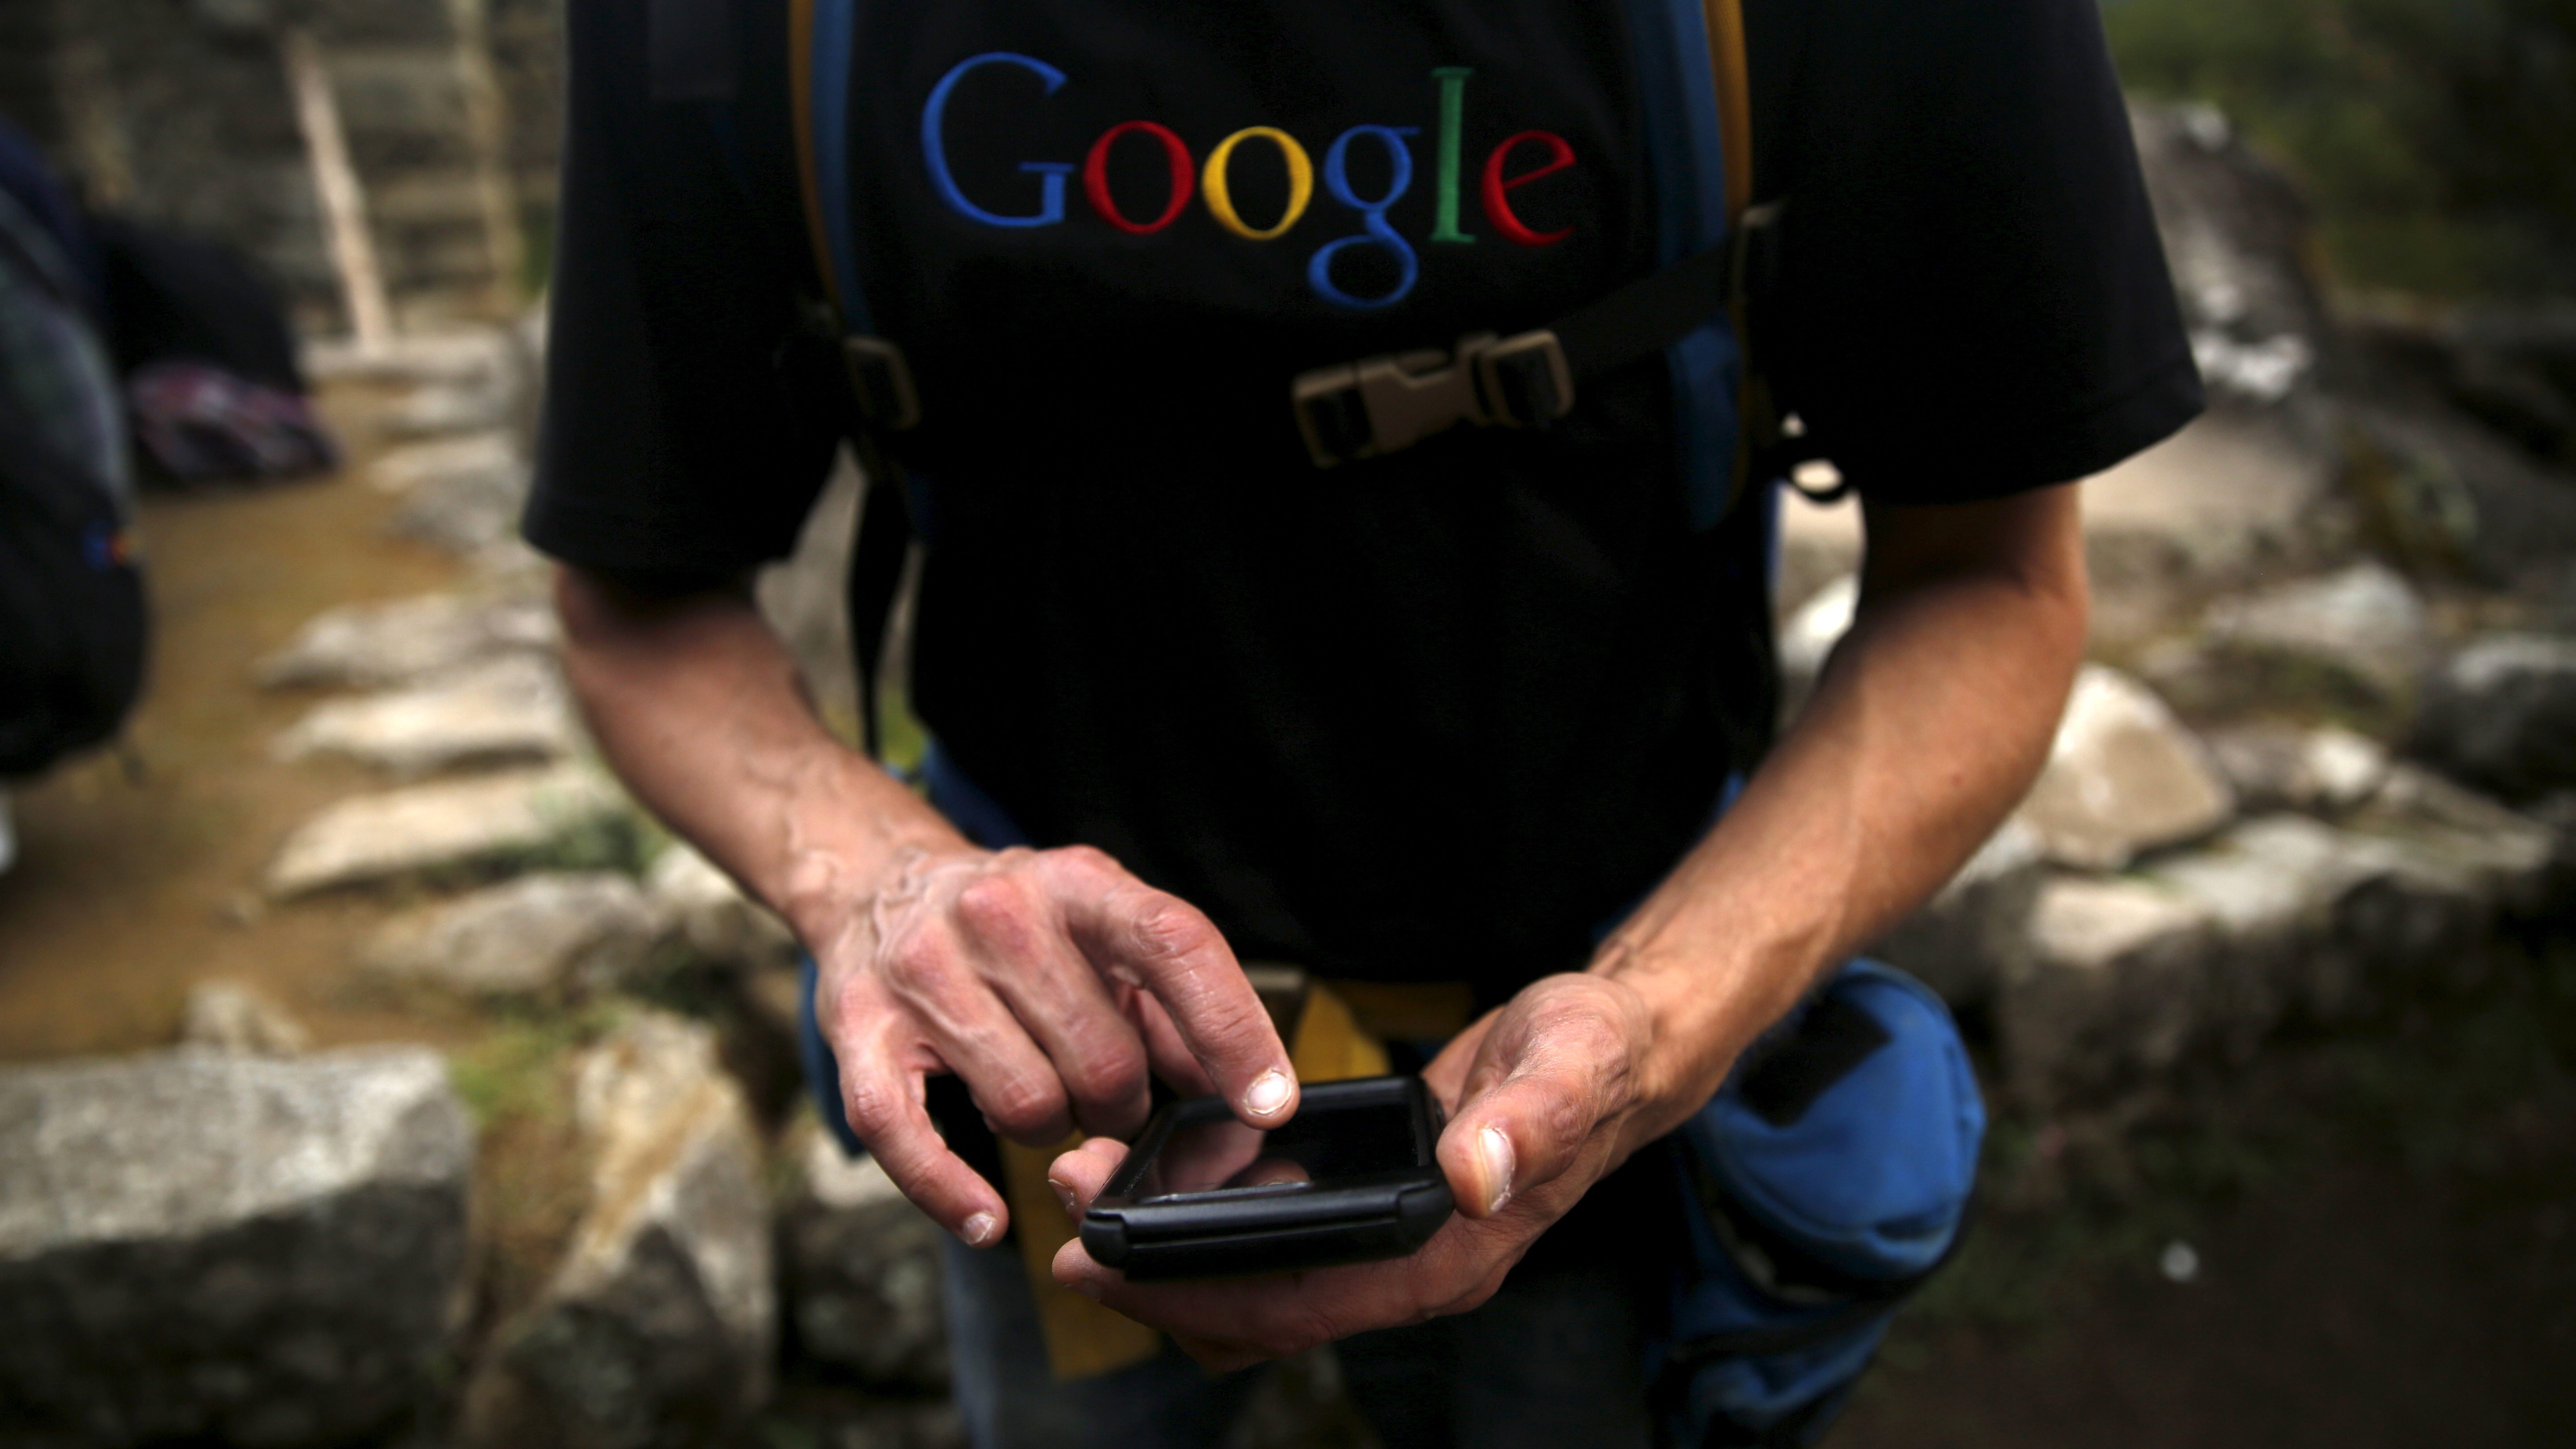 Daniel Filip, Tech Lead Manager for Google Maps, operates the Trekker, a 15-camera device, with his phone while mapping the Inca citadel of Machu Picchu for Google Street View in Cuzco, Peru, August 12, 2015. Picture taken August 12, 2015.  REUTERS/Pilar Olivares - GF10000254738